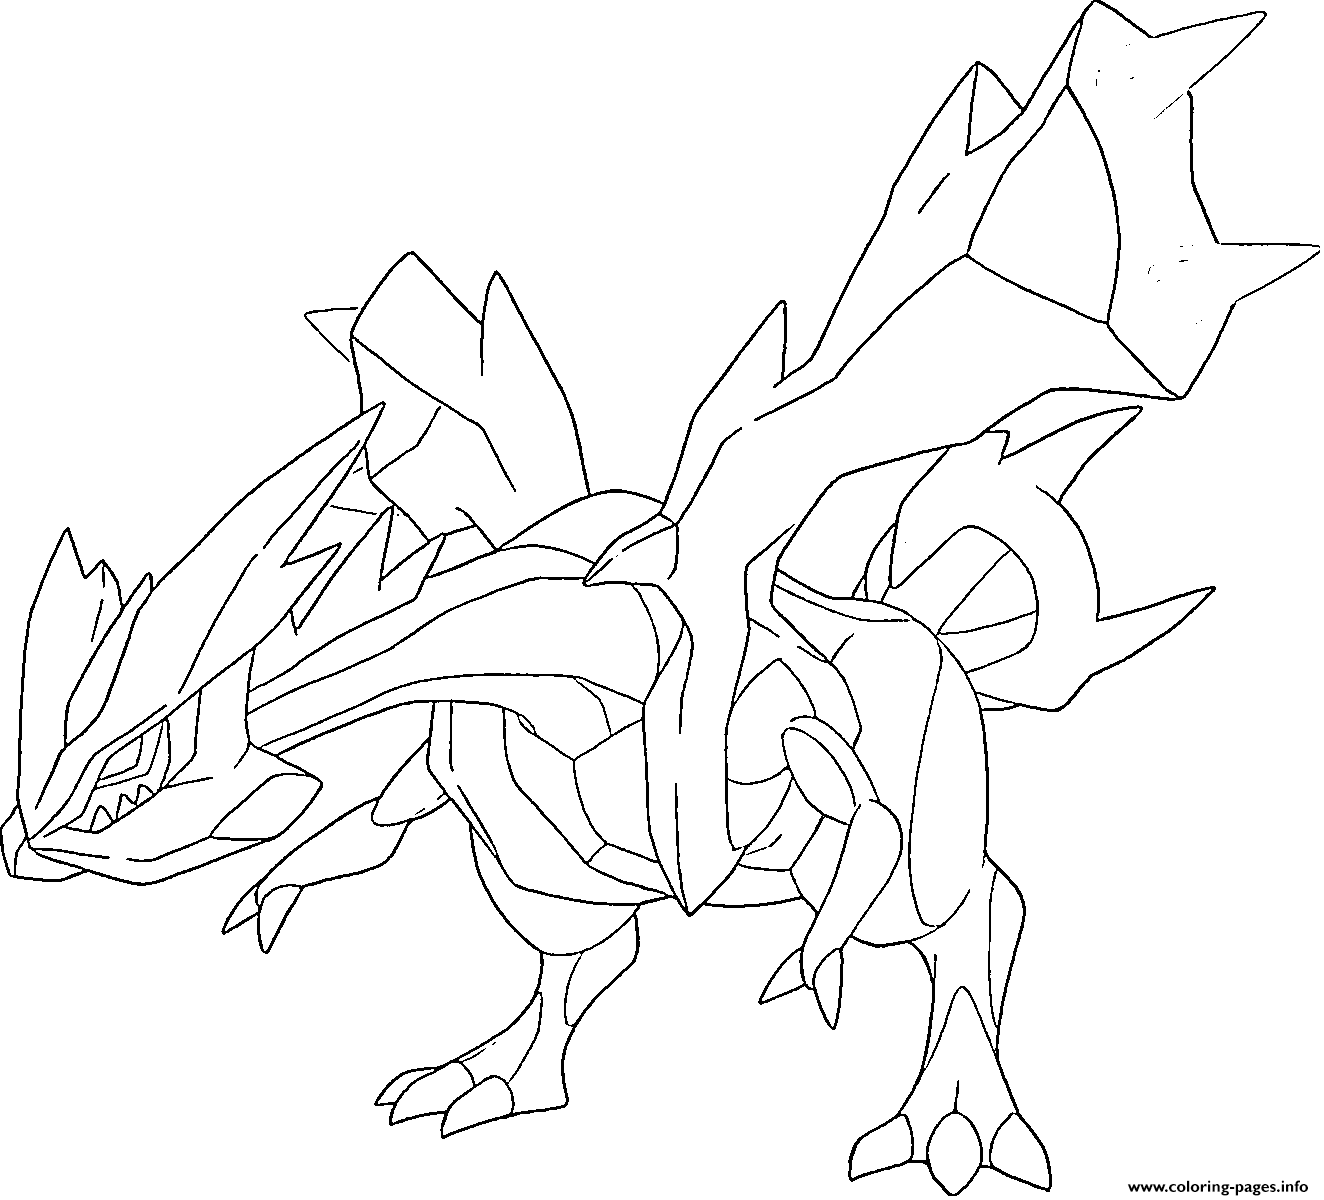 Kyurem Trio Yin Yang Qi Generation 5 Coloring Pages Printable